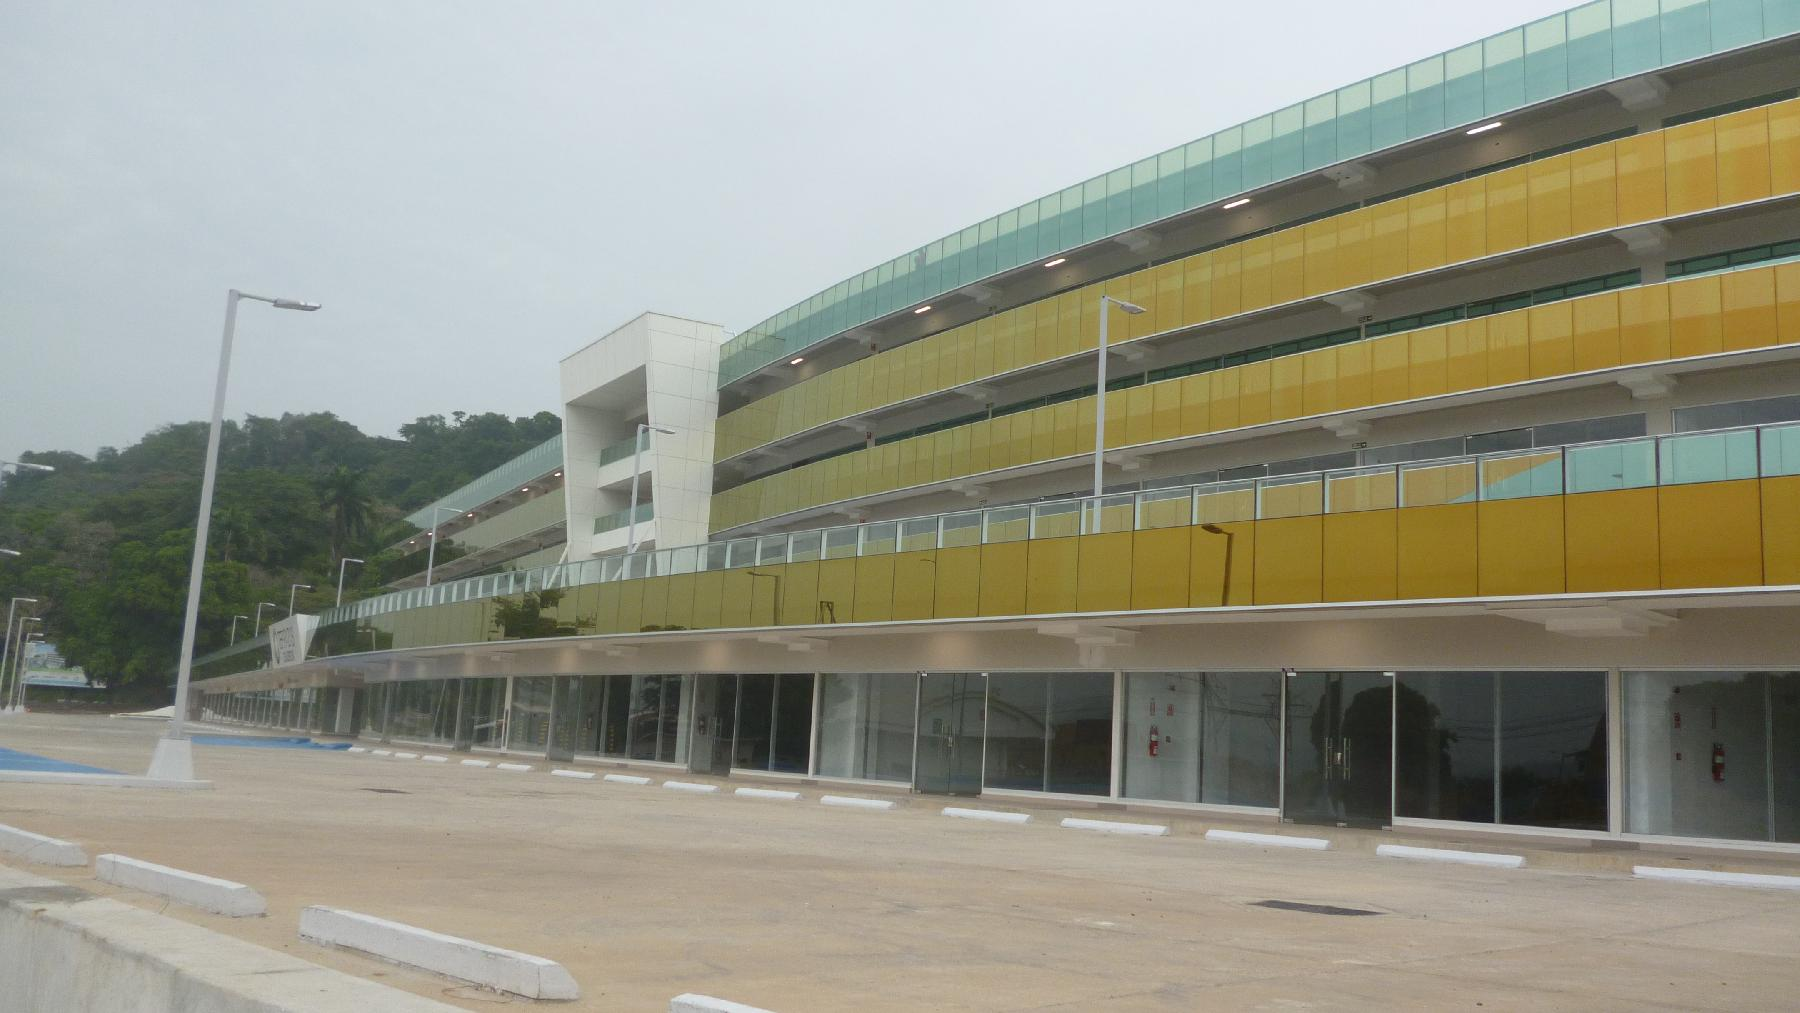 ALBROOK, COMMERCIAL SPACES FOR RENT IN TERRAZAS DE ALBROOK.